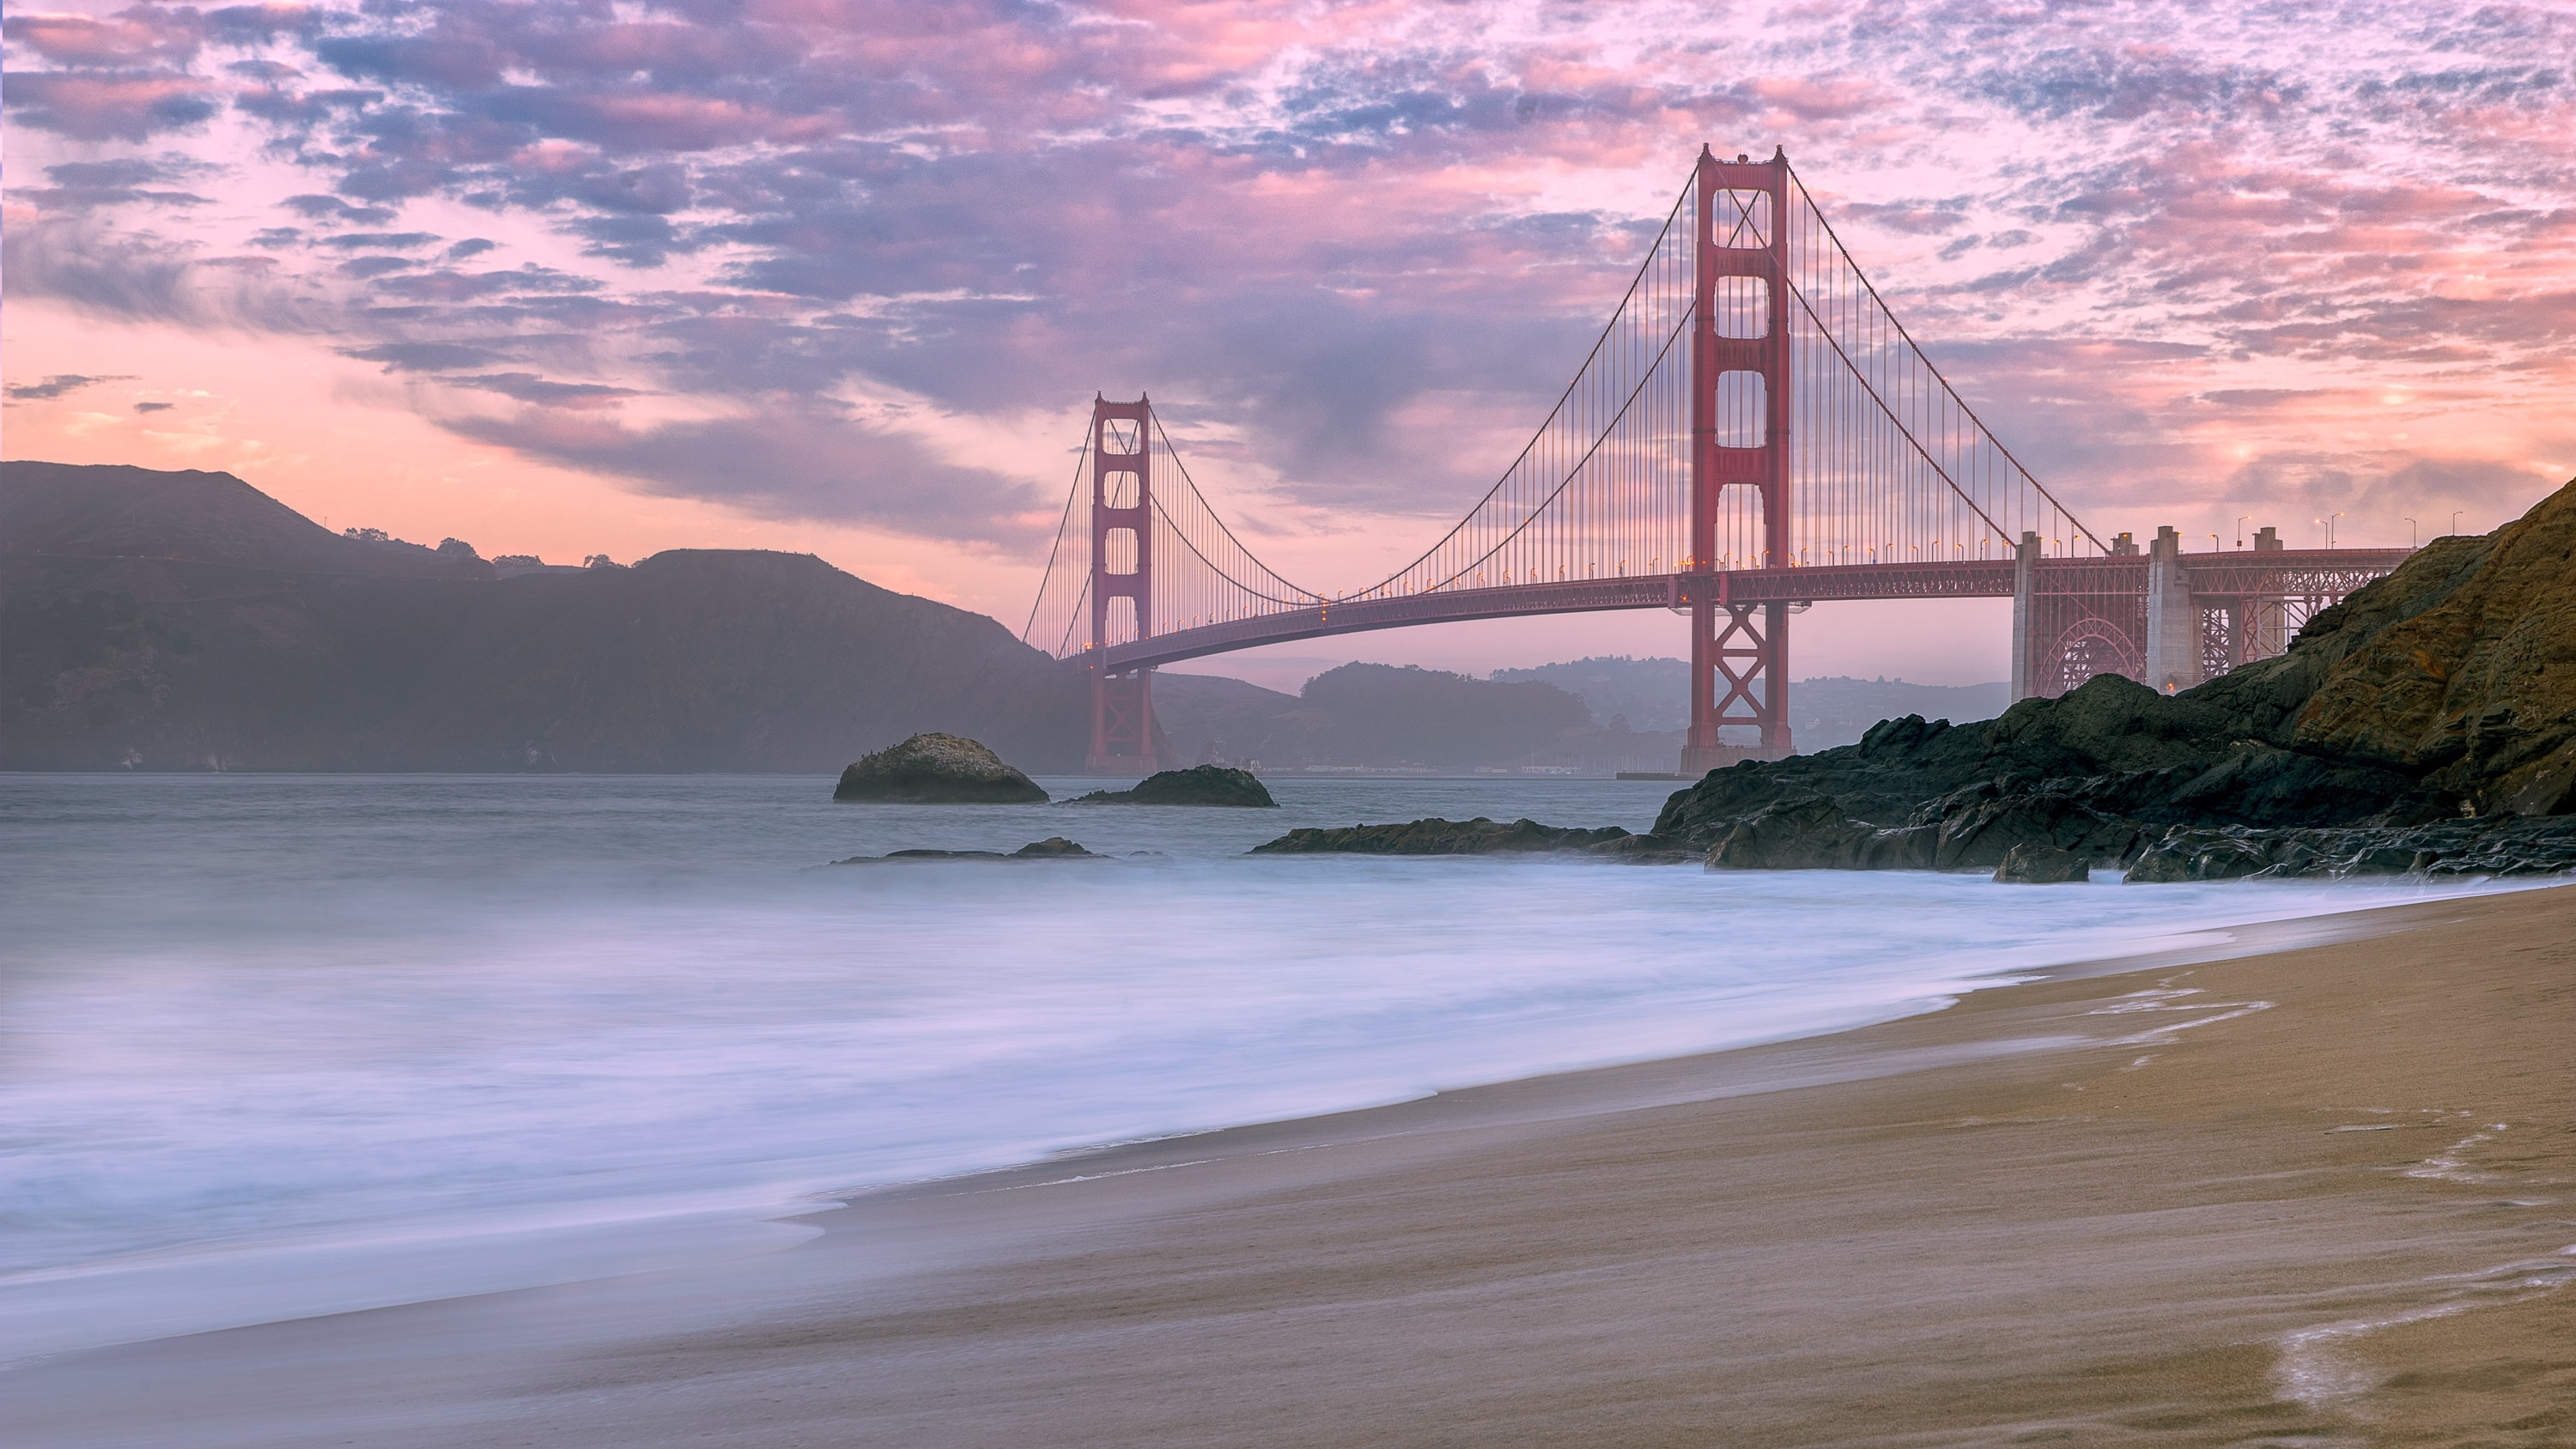 wide angle photo of Golden Gate Bridge under cloudy sky